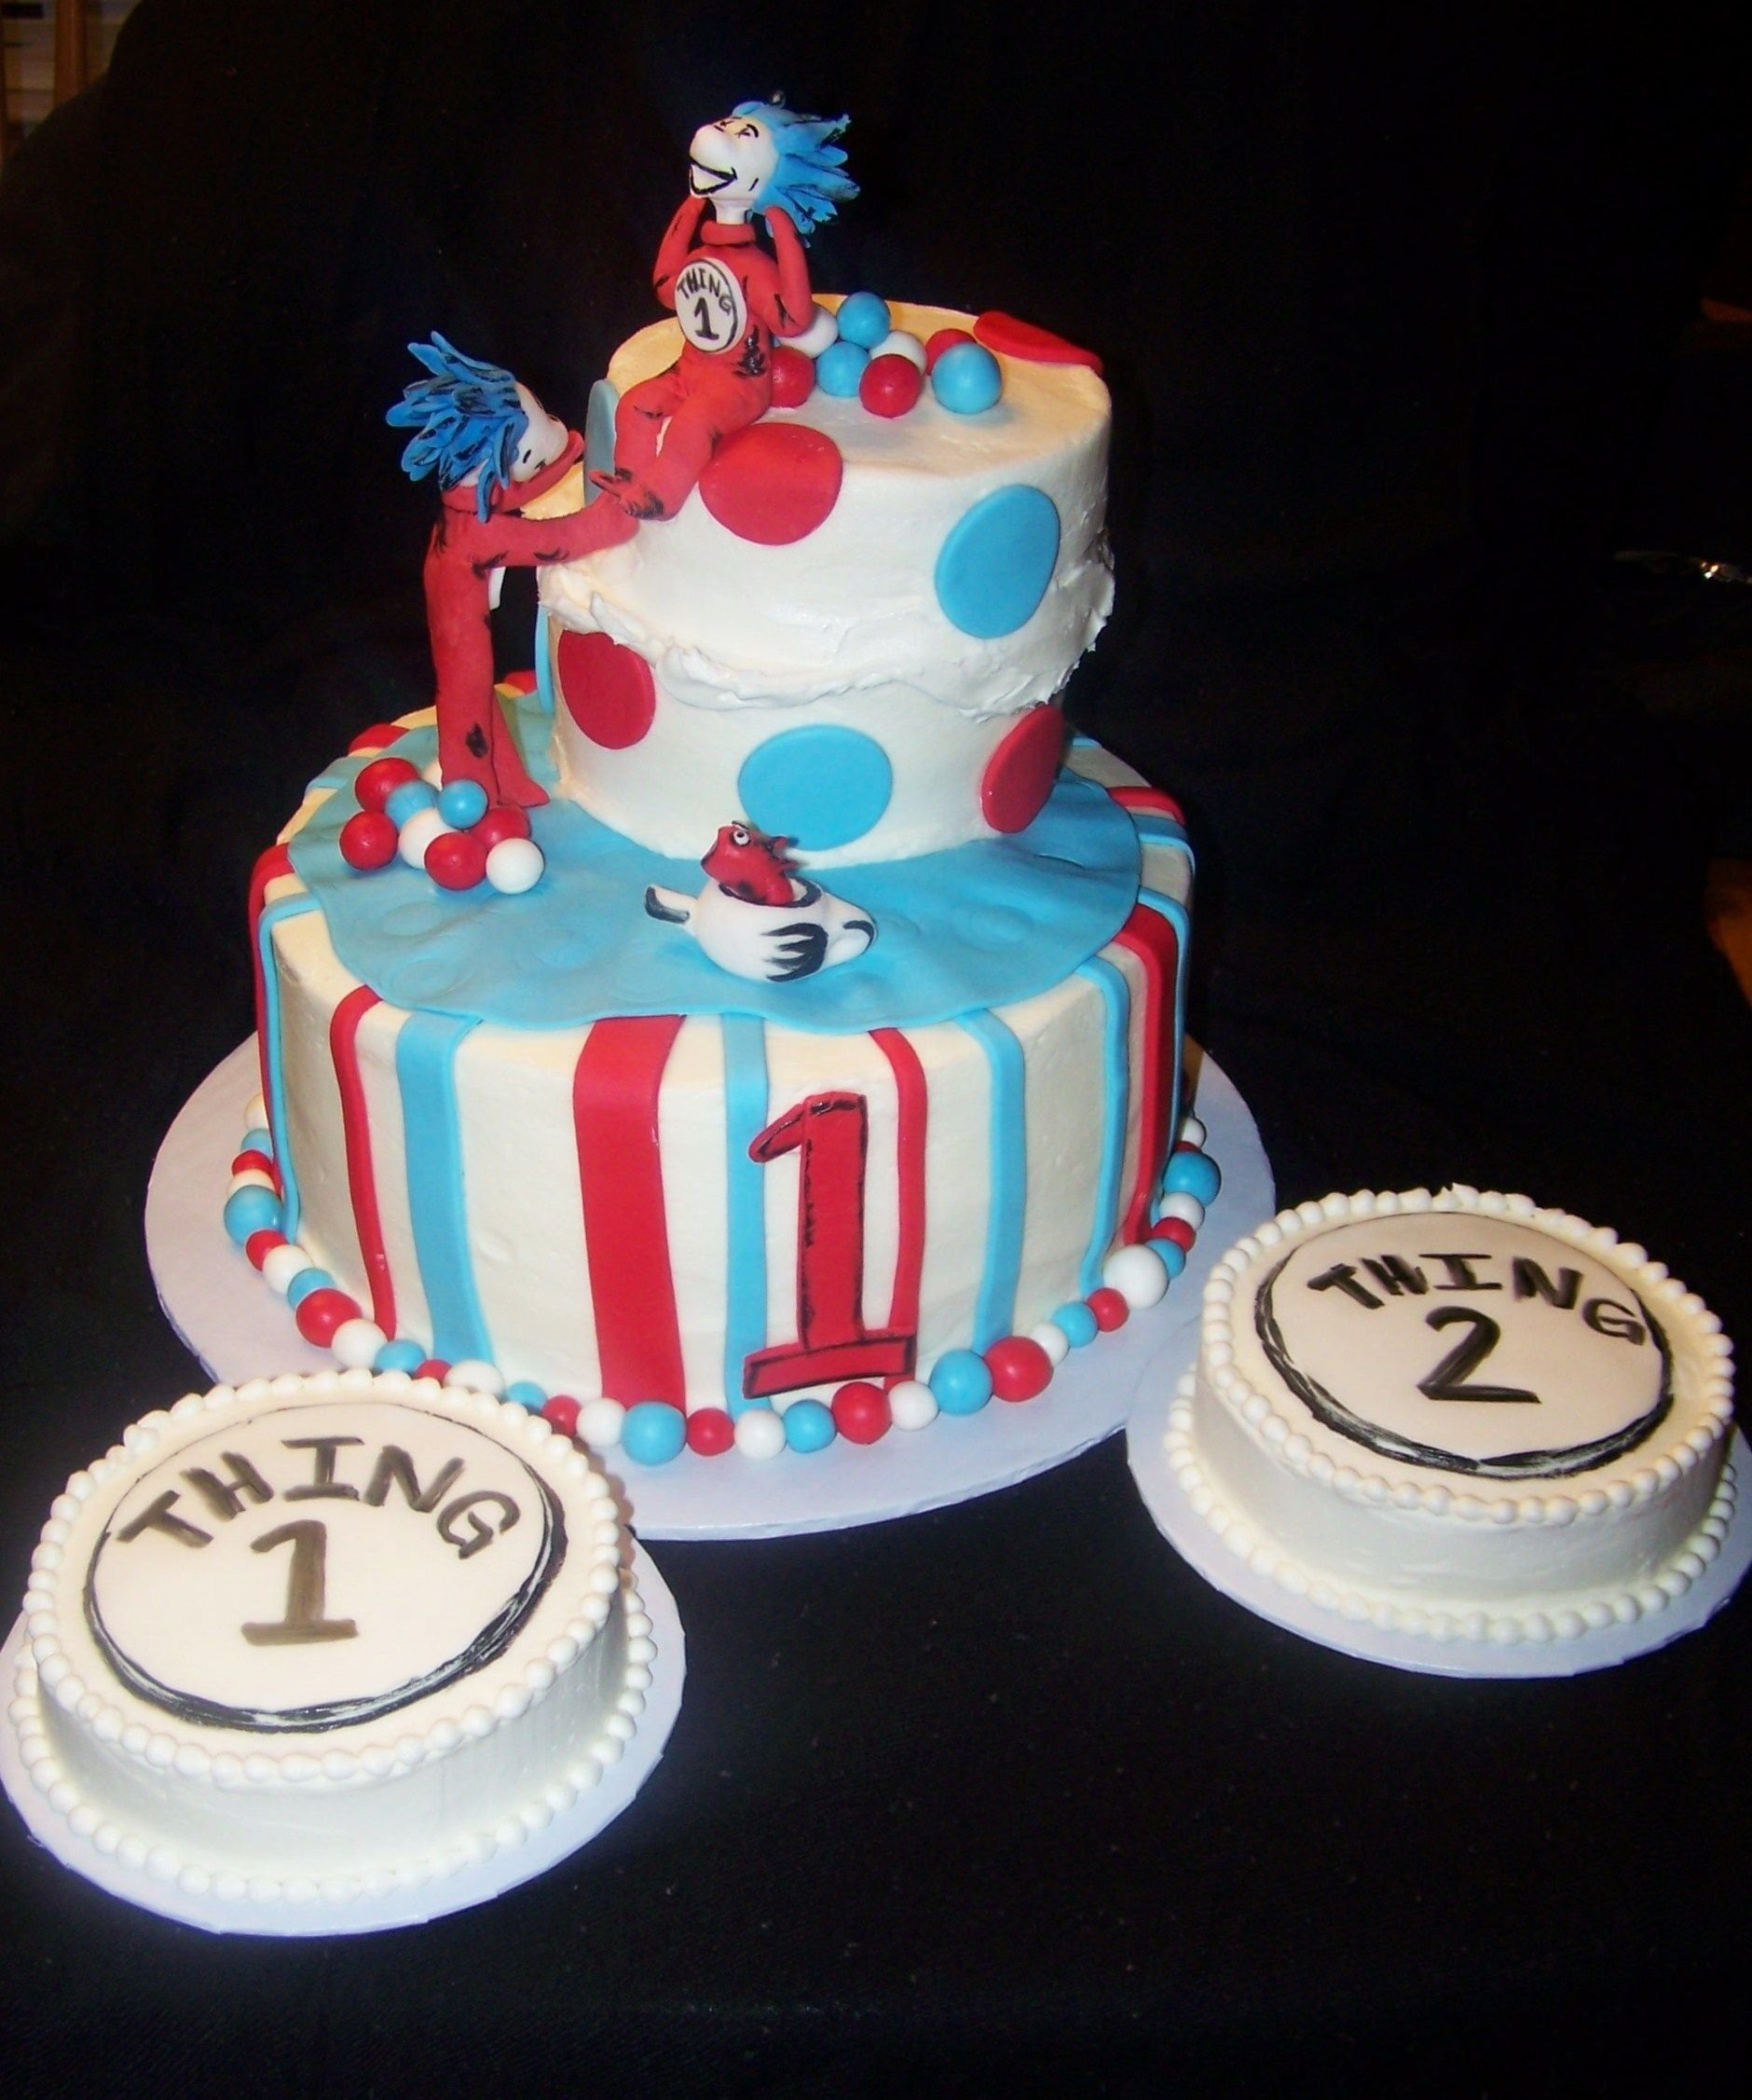 10 Awesome Thing 1 And Thing 2 Cake Ideas dr seuss thing 1 thing 2 birthday cake birthday cakes 2020